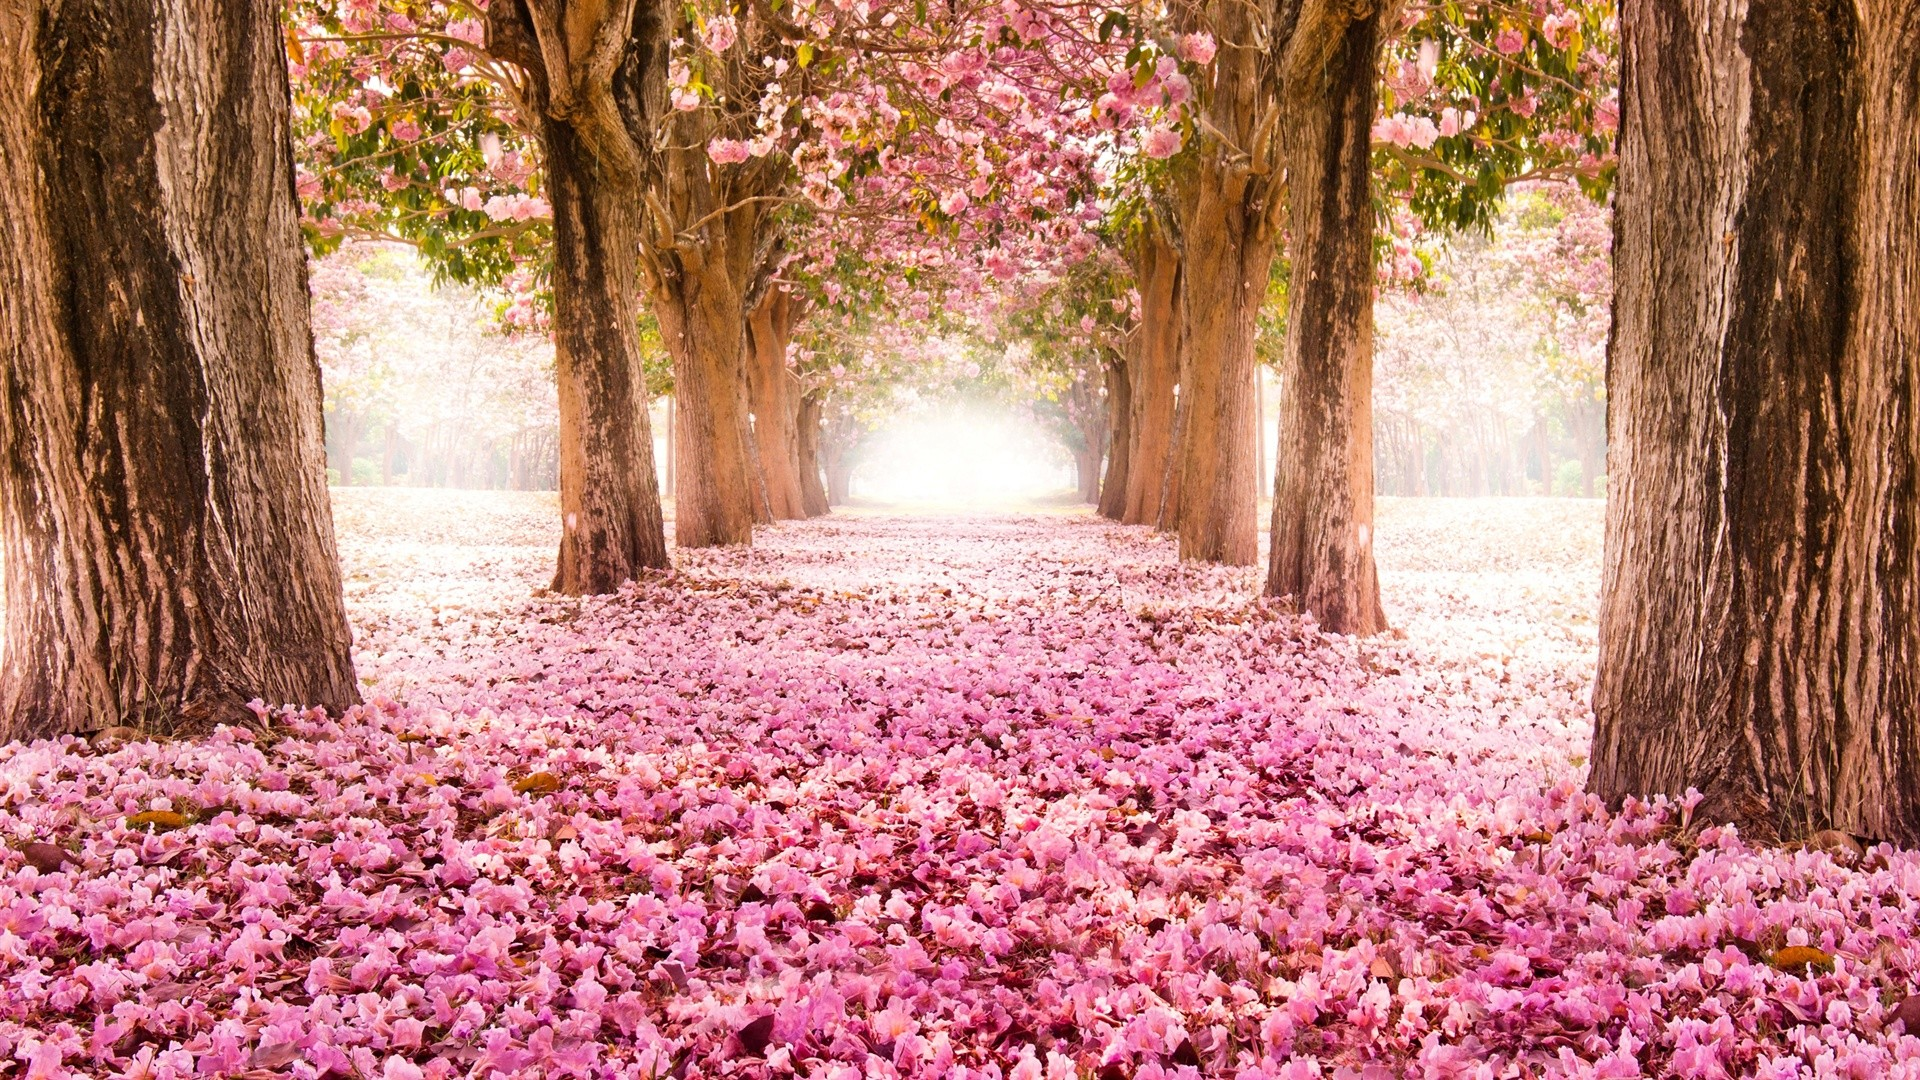 Image flower path pink forest beautiful flowers indus carpet flower path pink forest beautiful flowers indus carpet scenery trees hd desktop wallpaperg izmirmasajfo